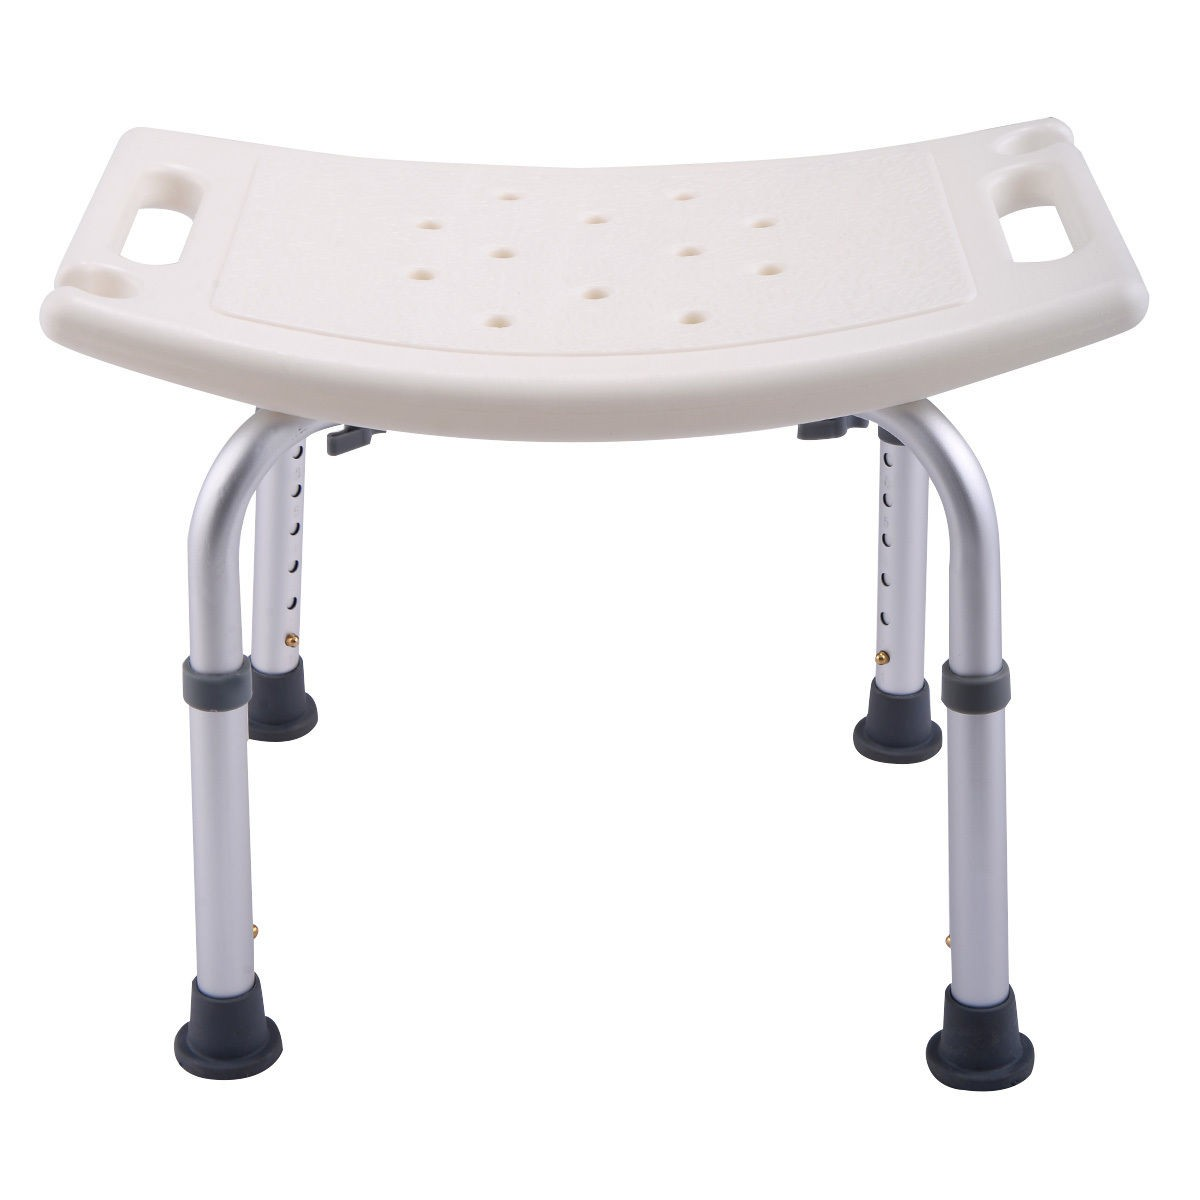 6 height adjustable bath shower chair medical seat stool for White bathroom stool